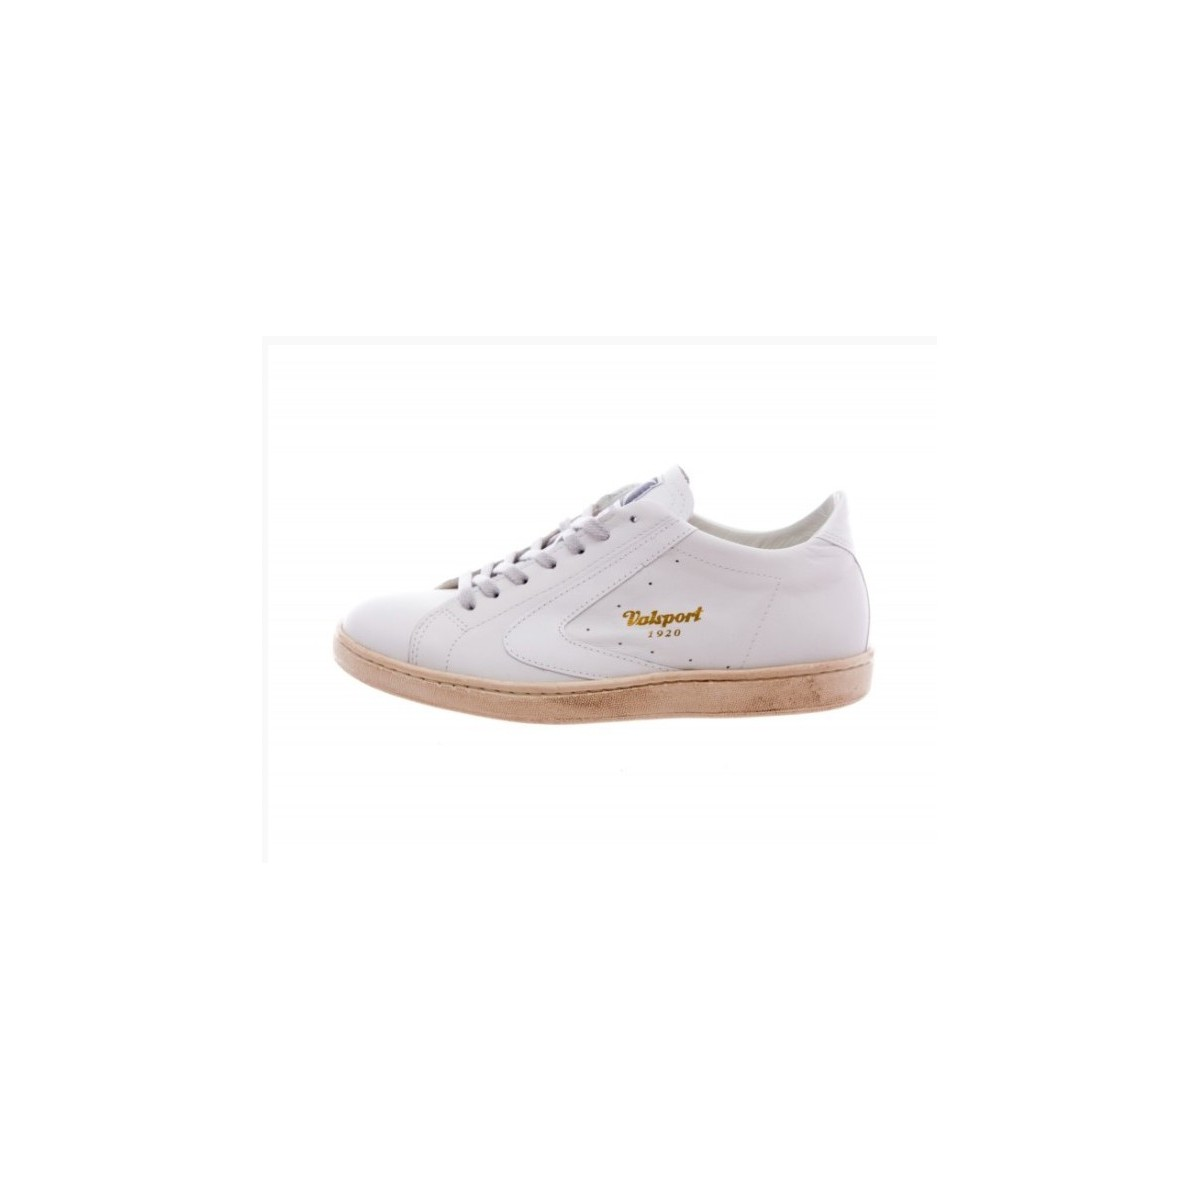 Scarpa - Tournament nappa ws19 bianco/bianco